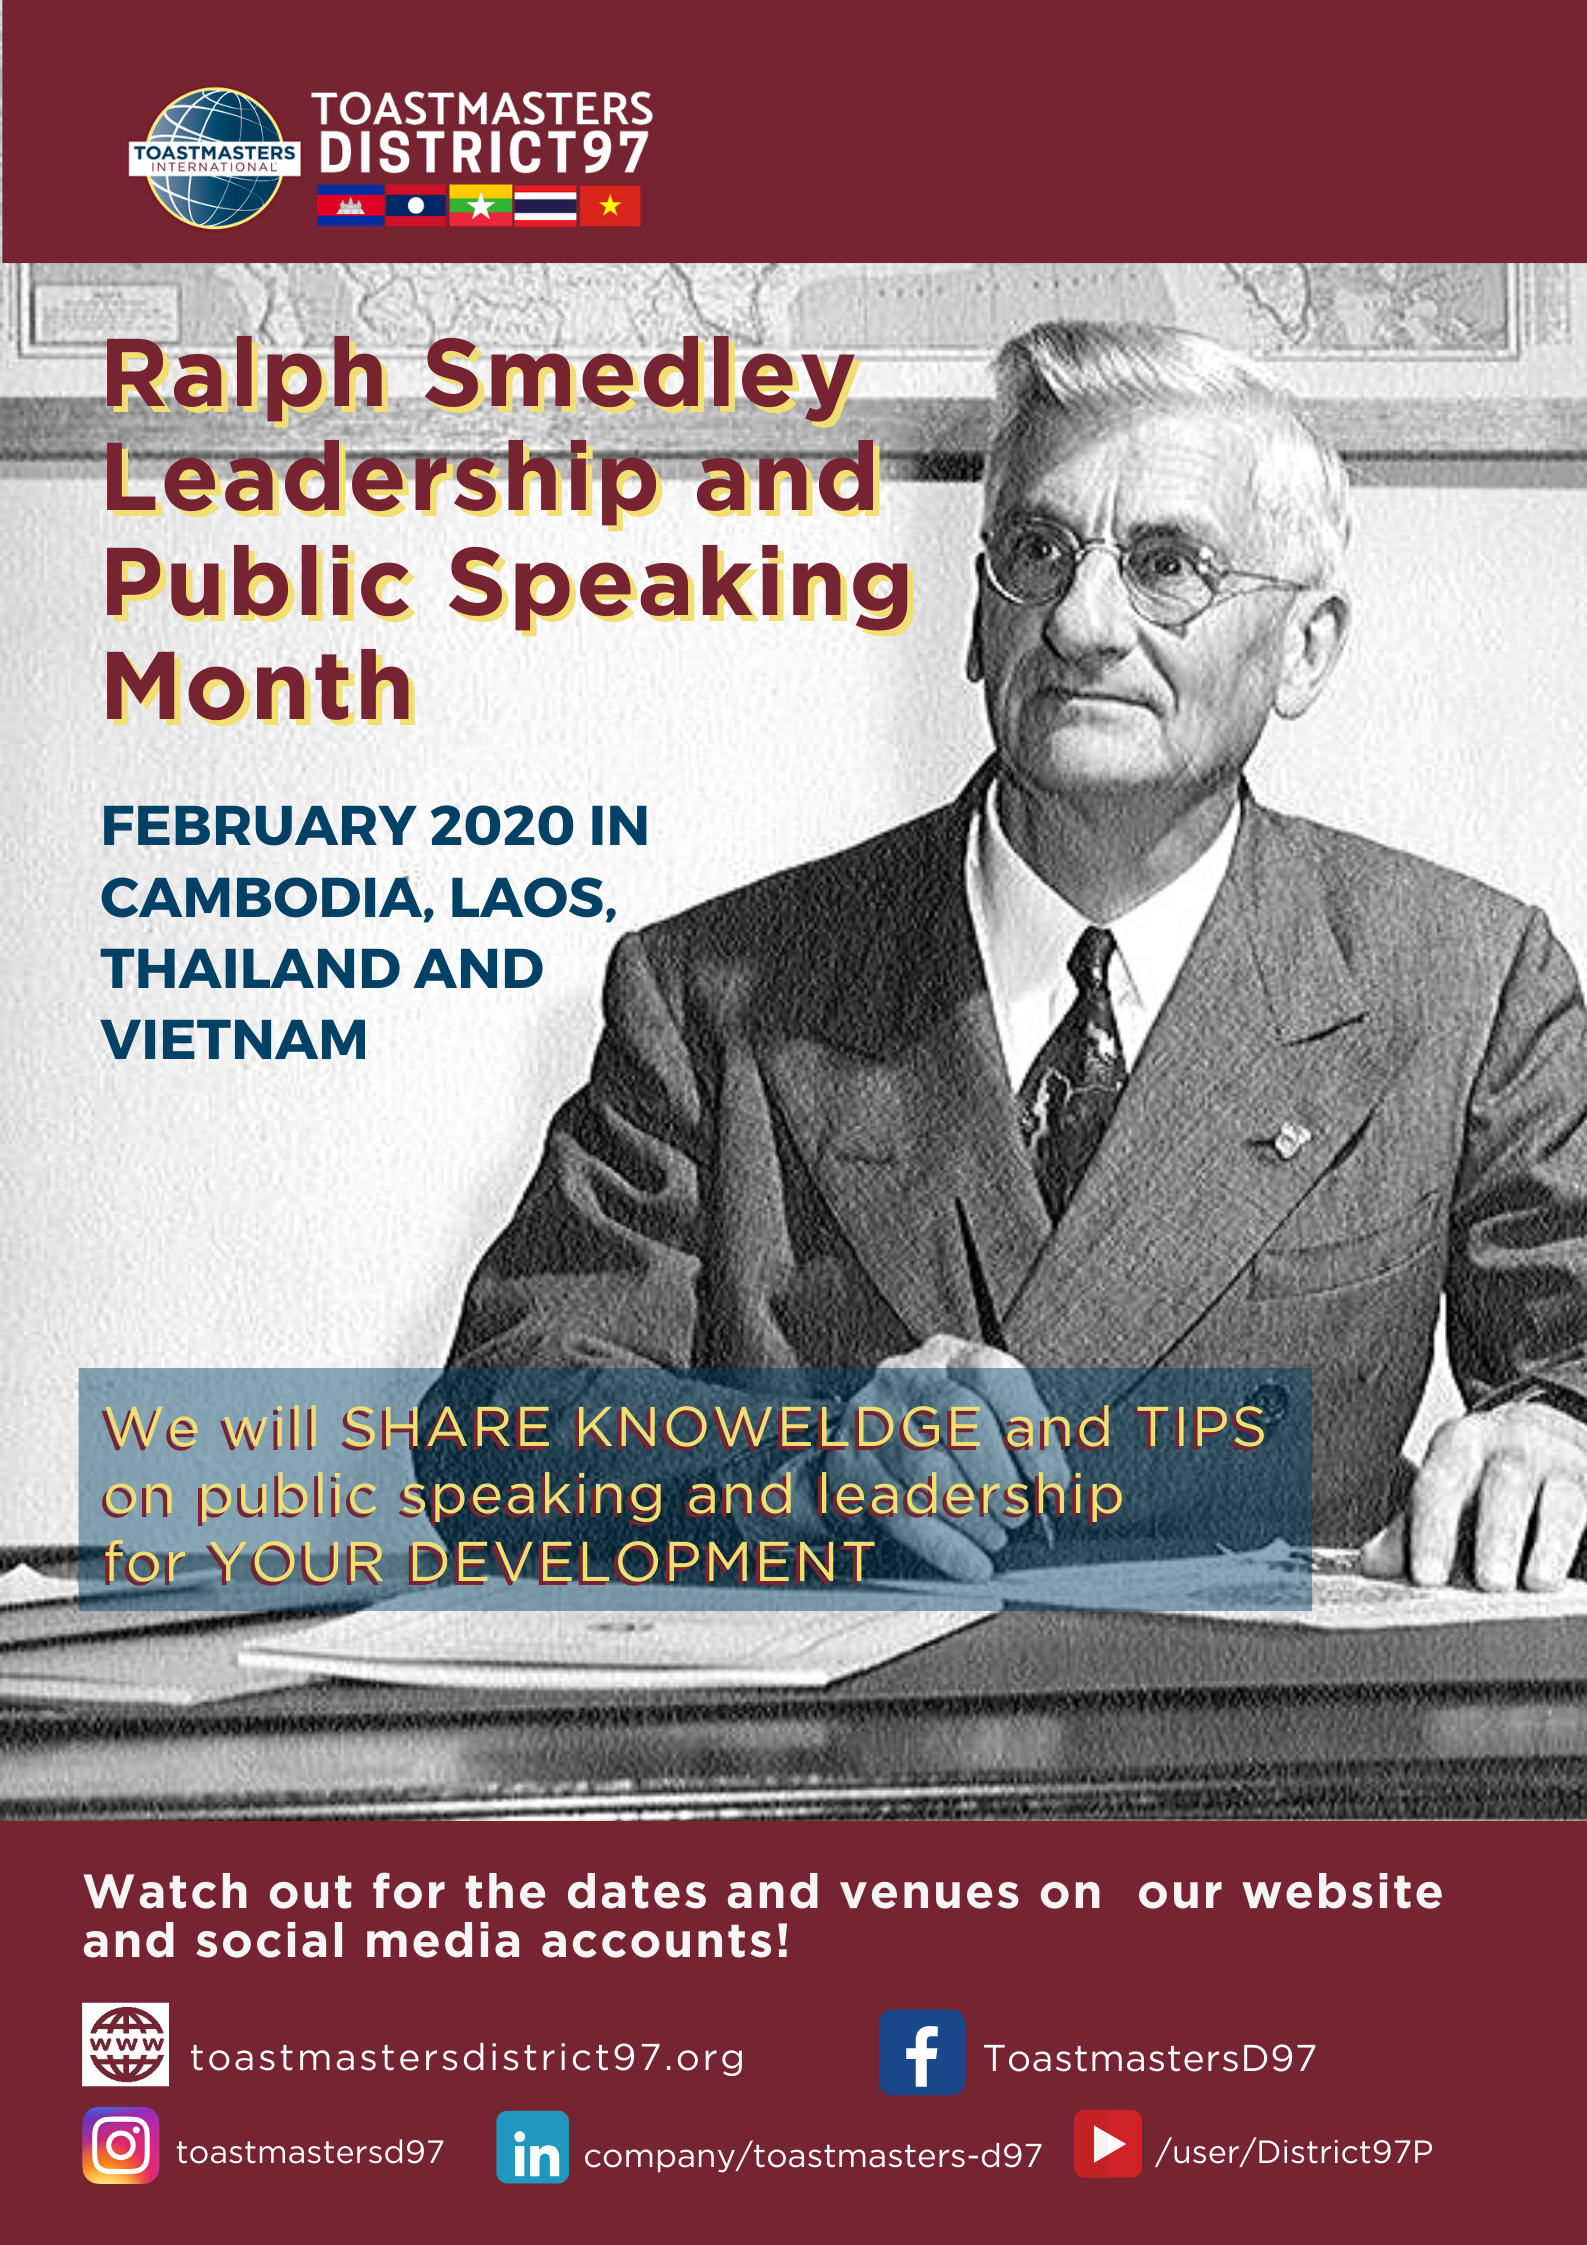 Ralph Smedley Leadership and Public Speaking Month